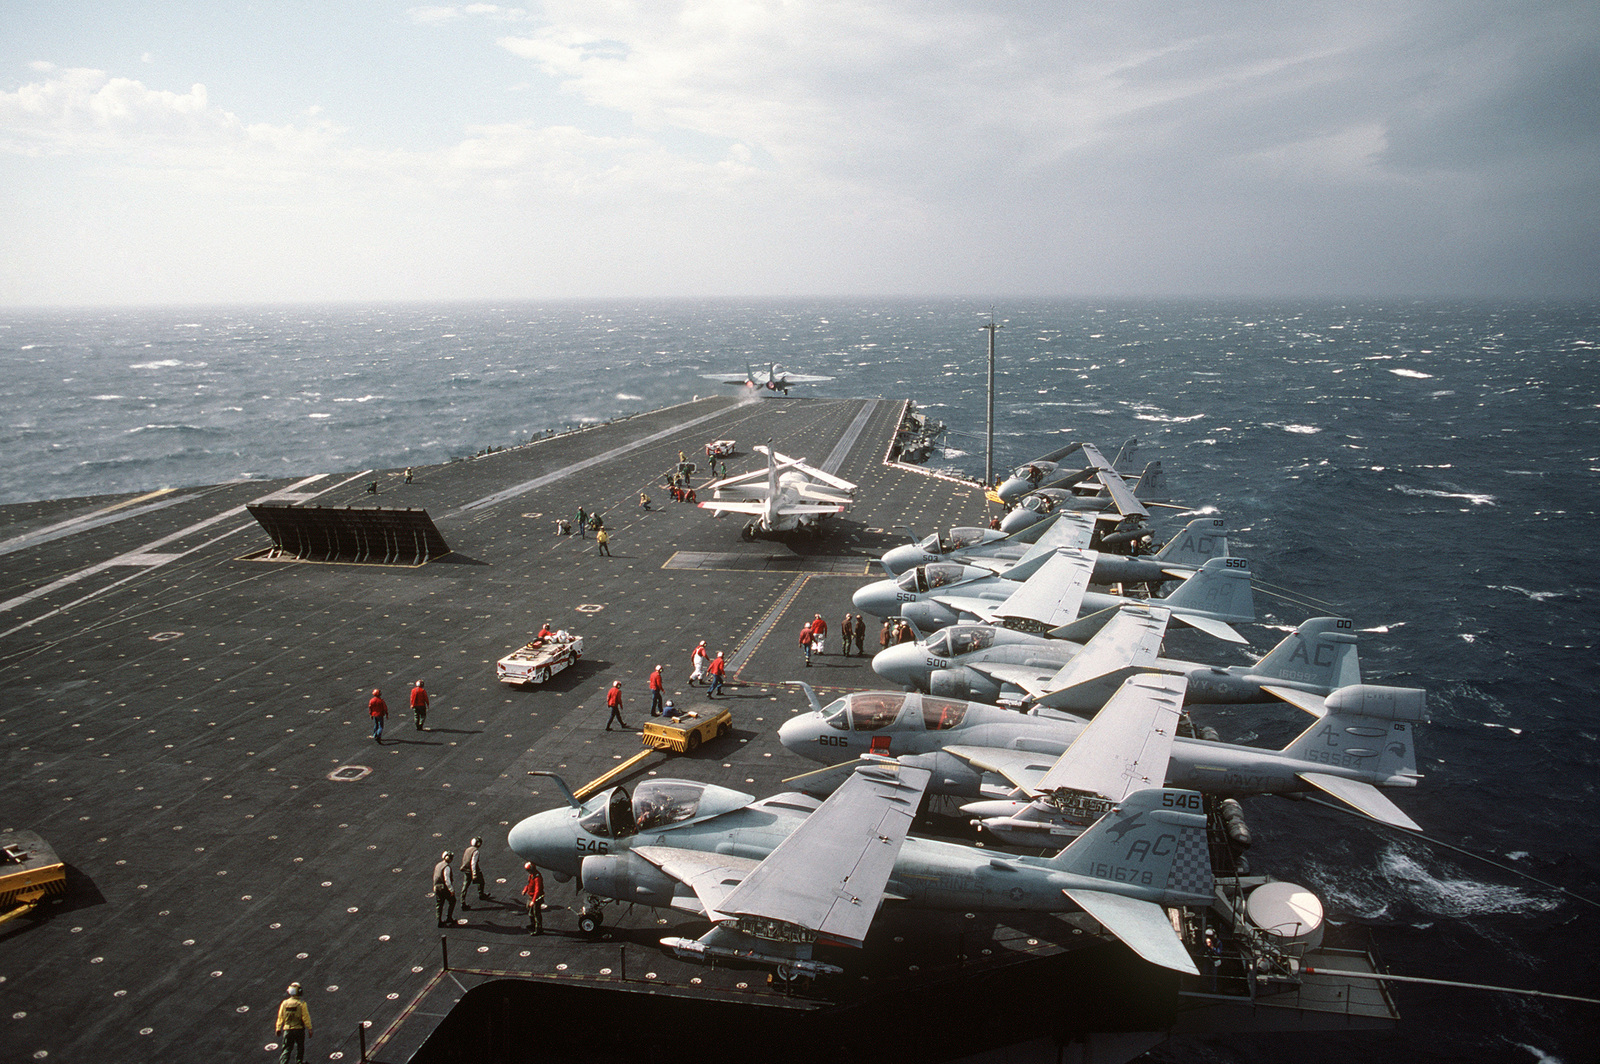 An F-14A Tomcat aircraft is launched from the aircraft carrier USS JOHN F. KENNEDY (CV 67) as an S-3A Viking aircraft is attached to the catapult on the right. Six A-6E Intruder aircraft and an EA-6B Prowler aircraft are parked on the deck edge